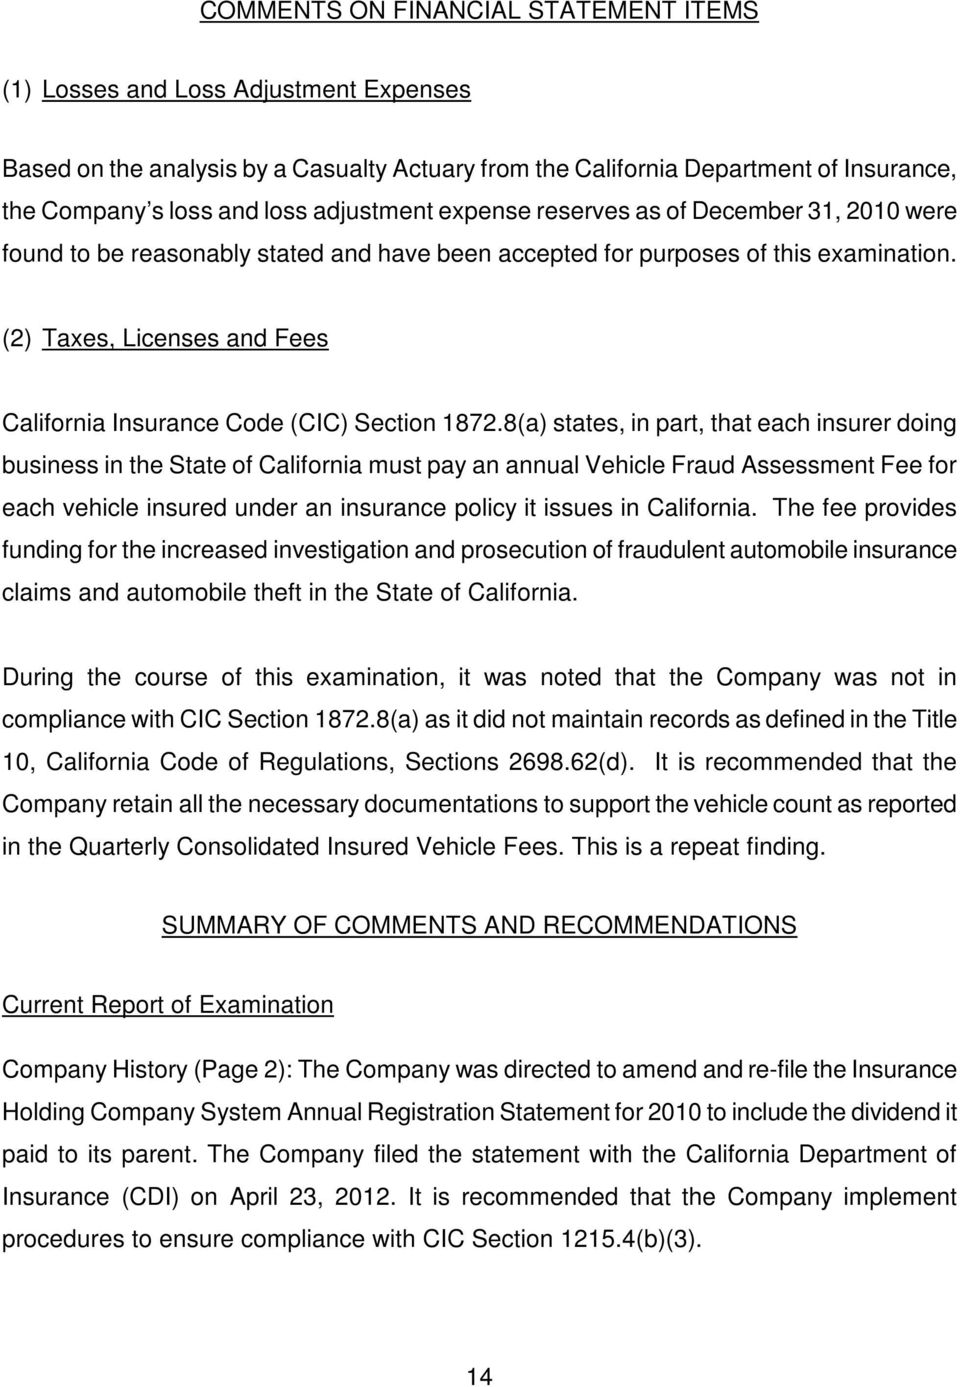 (2) Taxes, Licenses and Fees California Insurance Code (CIC) Section 1872.